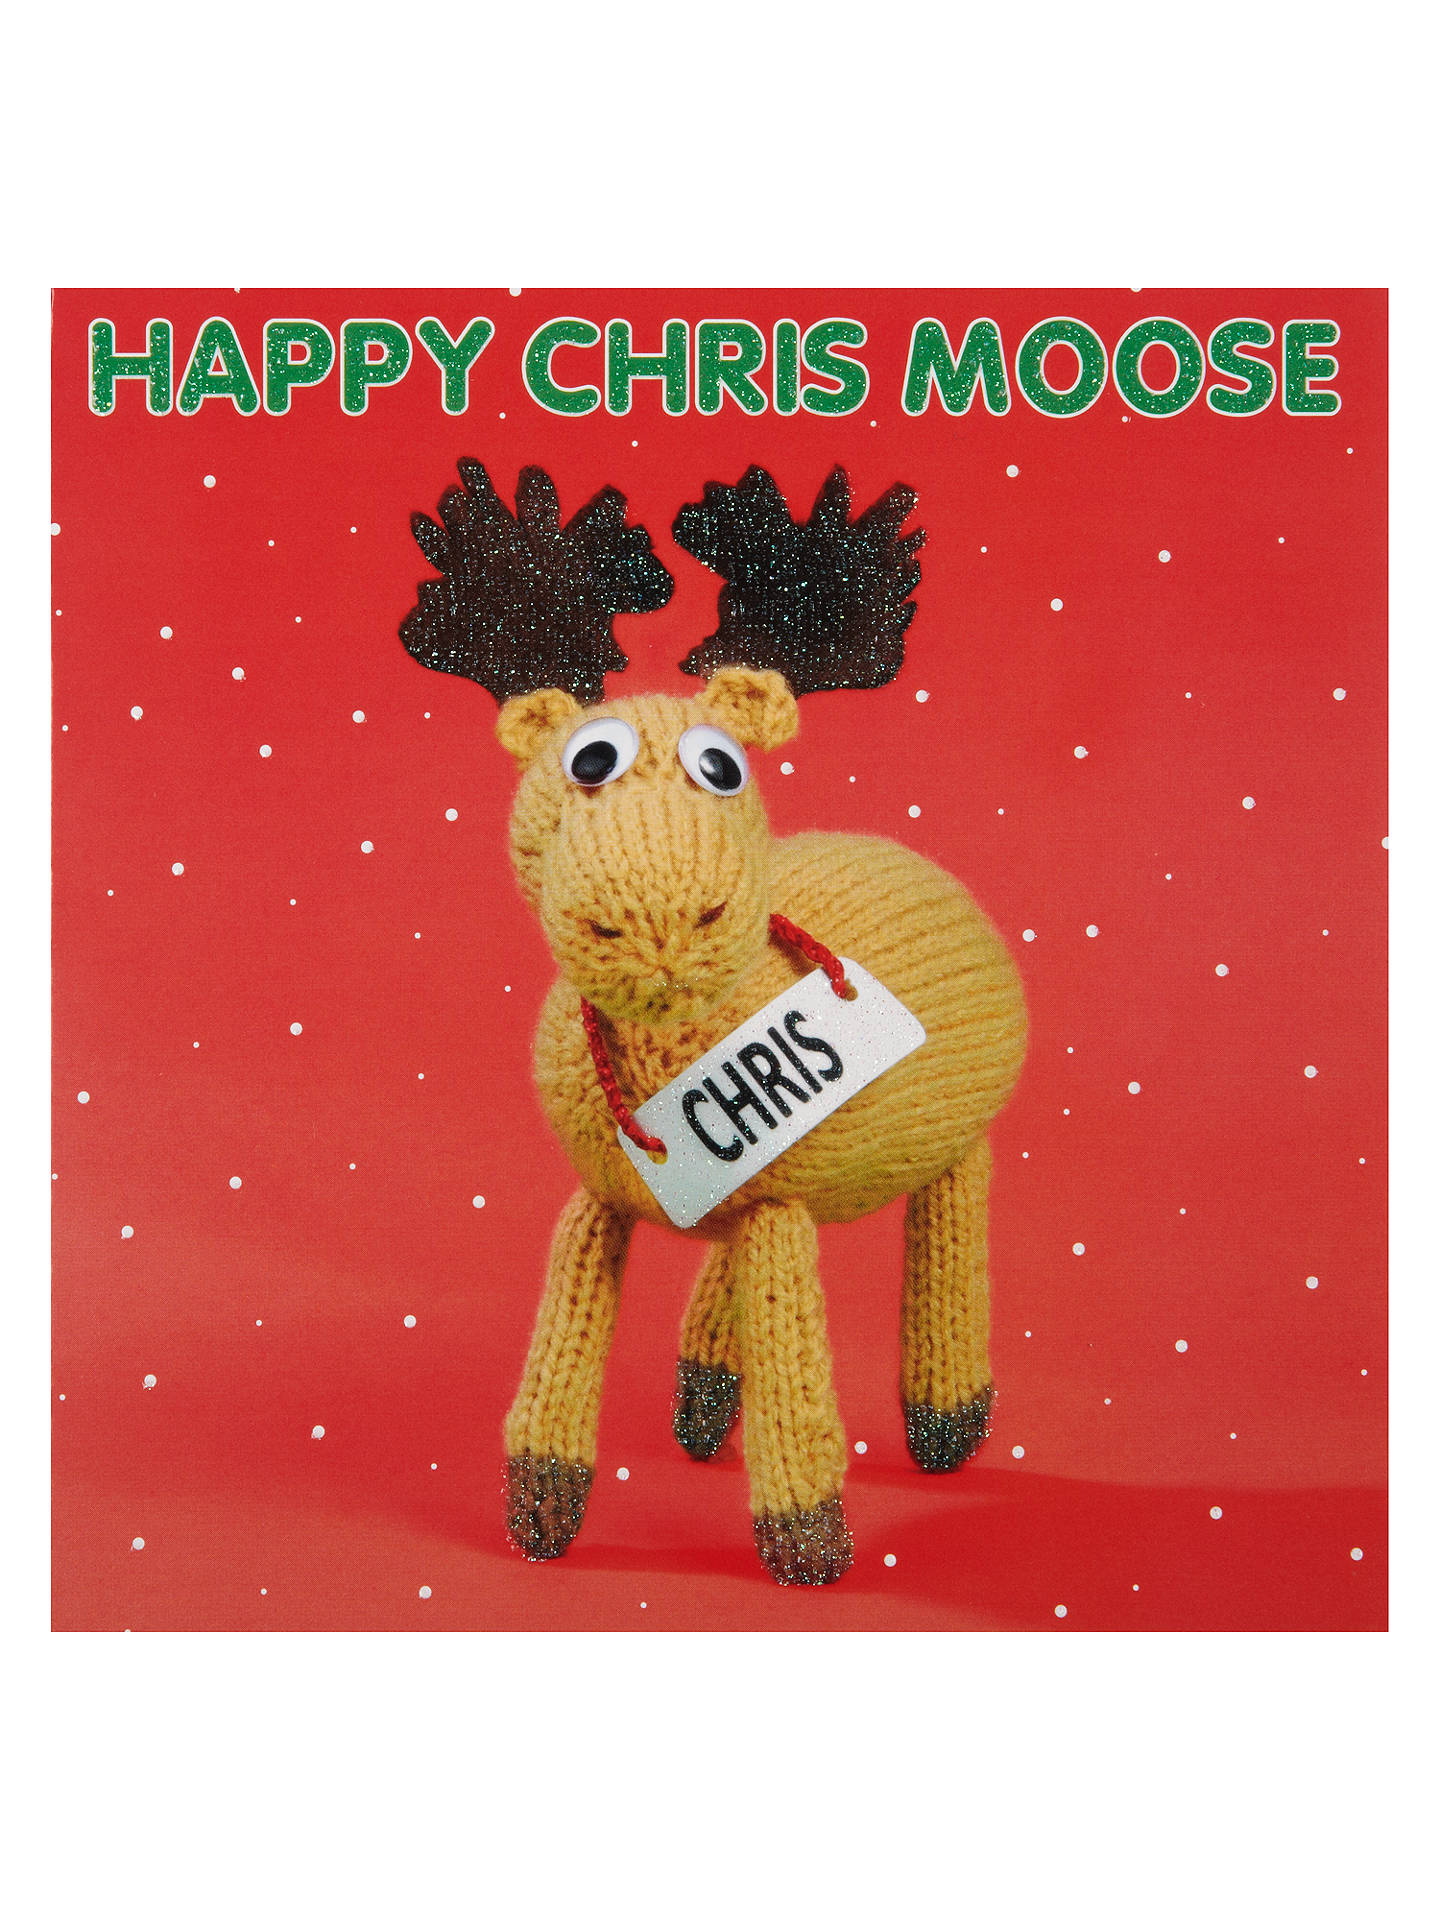 Mint Chris Moose Charity Christmas Cards, Box of 5 at John Lewis ...